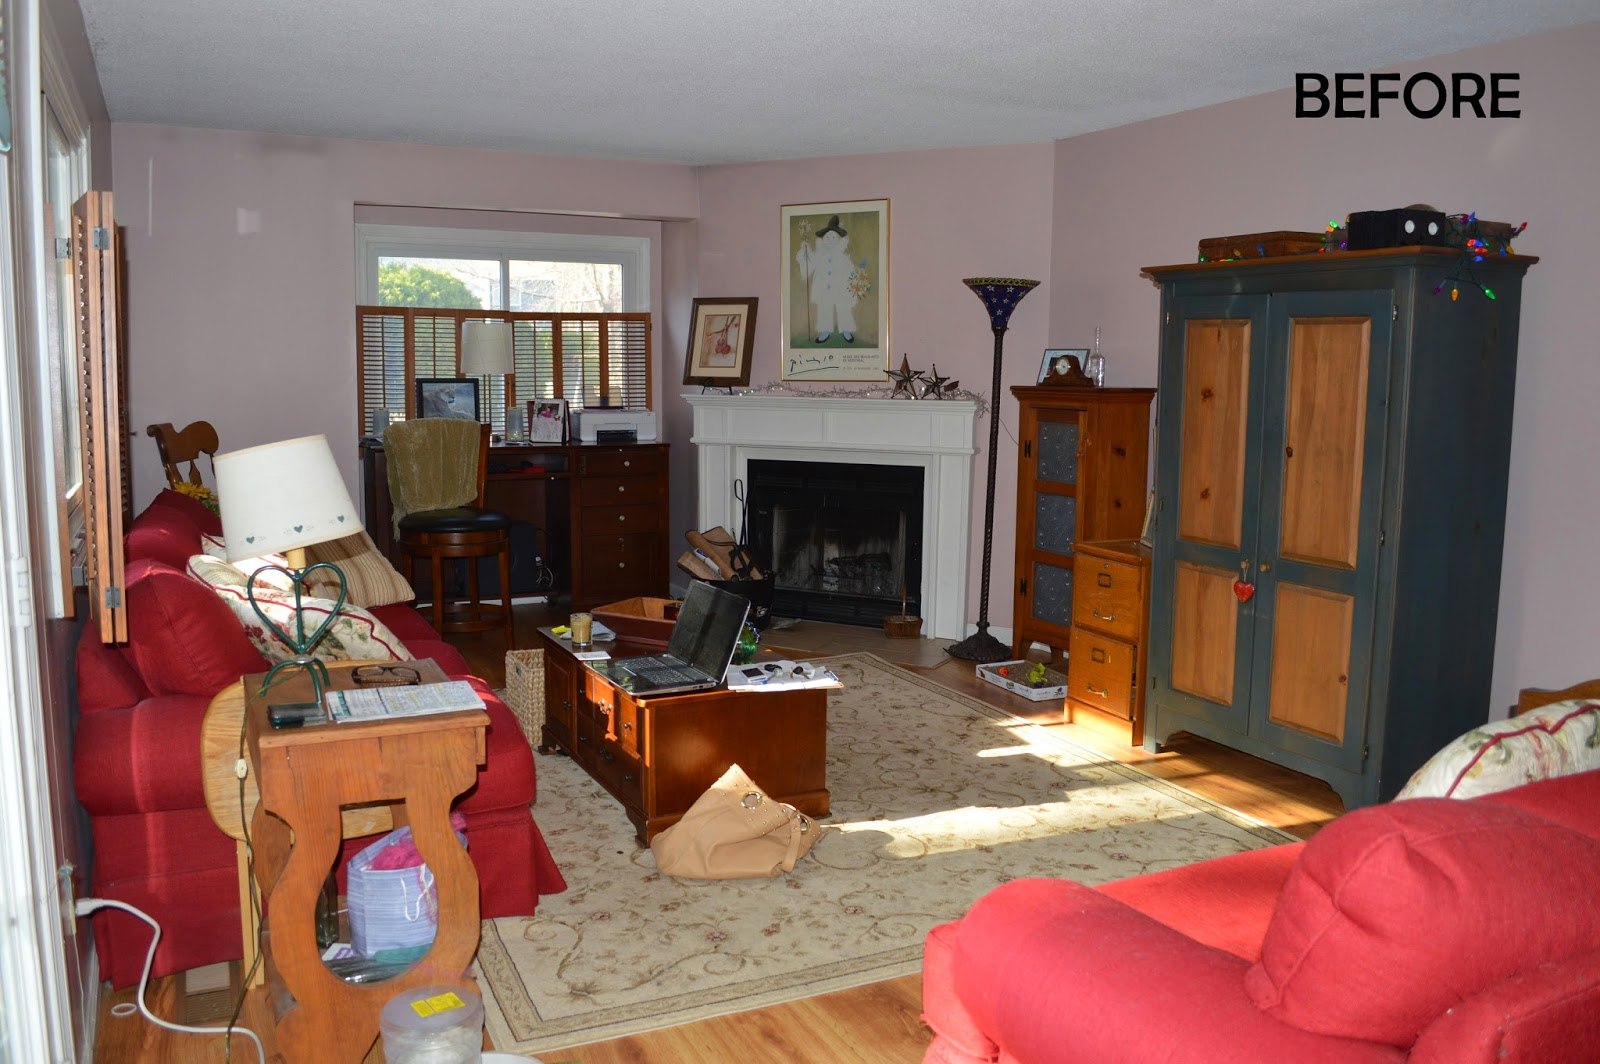 Pink walls with smoke damage up by the ceiling 80s country wood furniture bland tile in front of the fireplace too much clutter